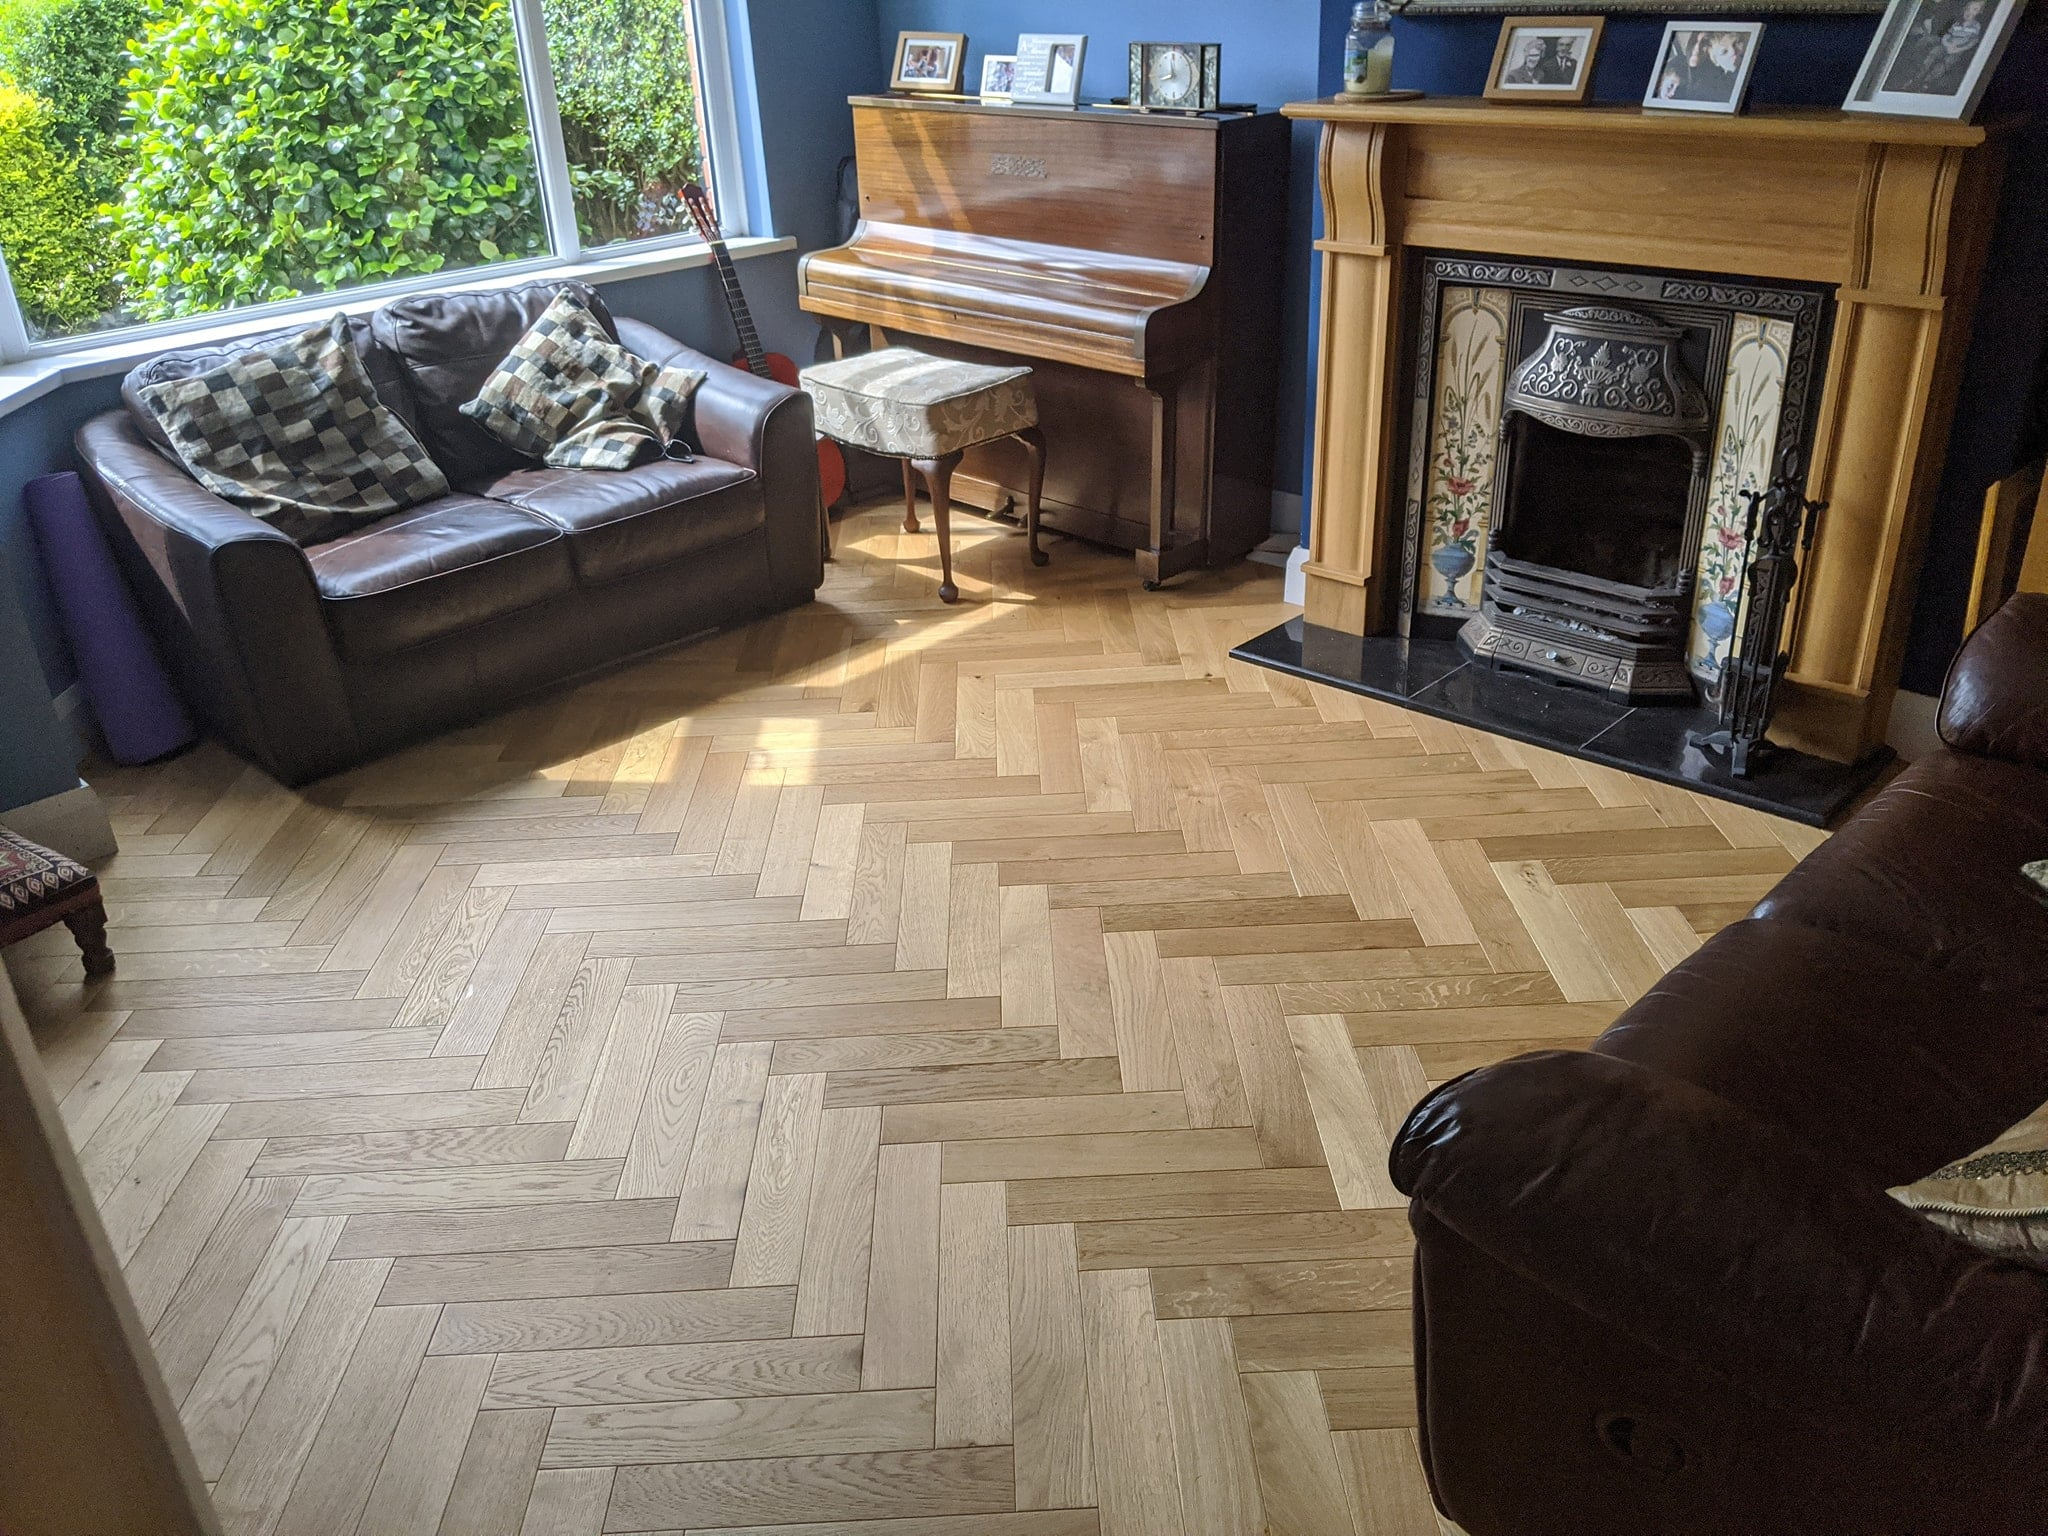 Waterproof Laminate Floors for Your Home